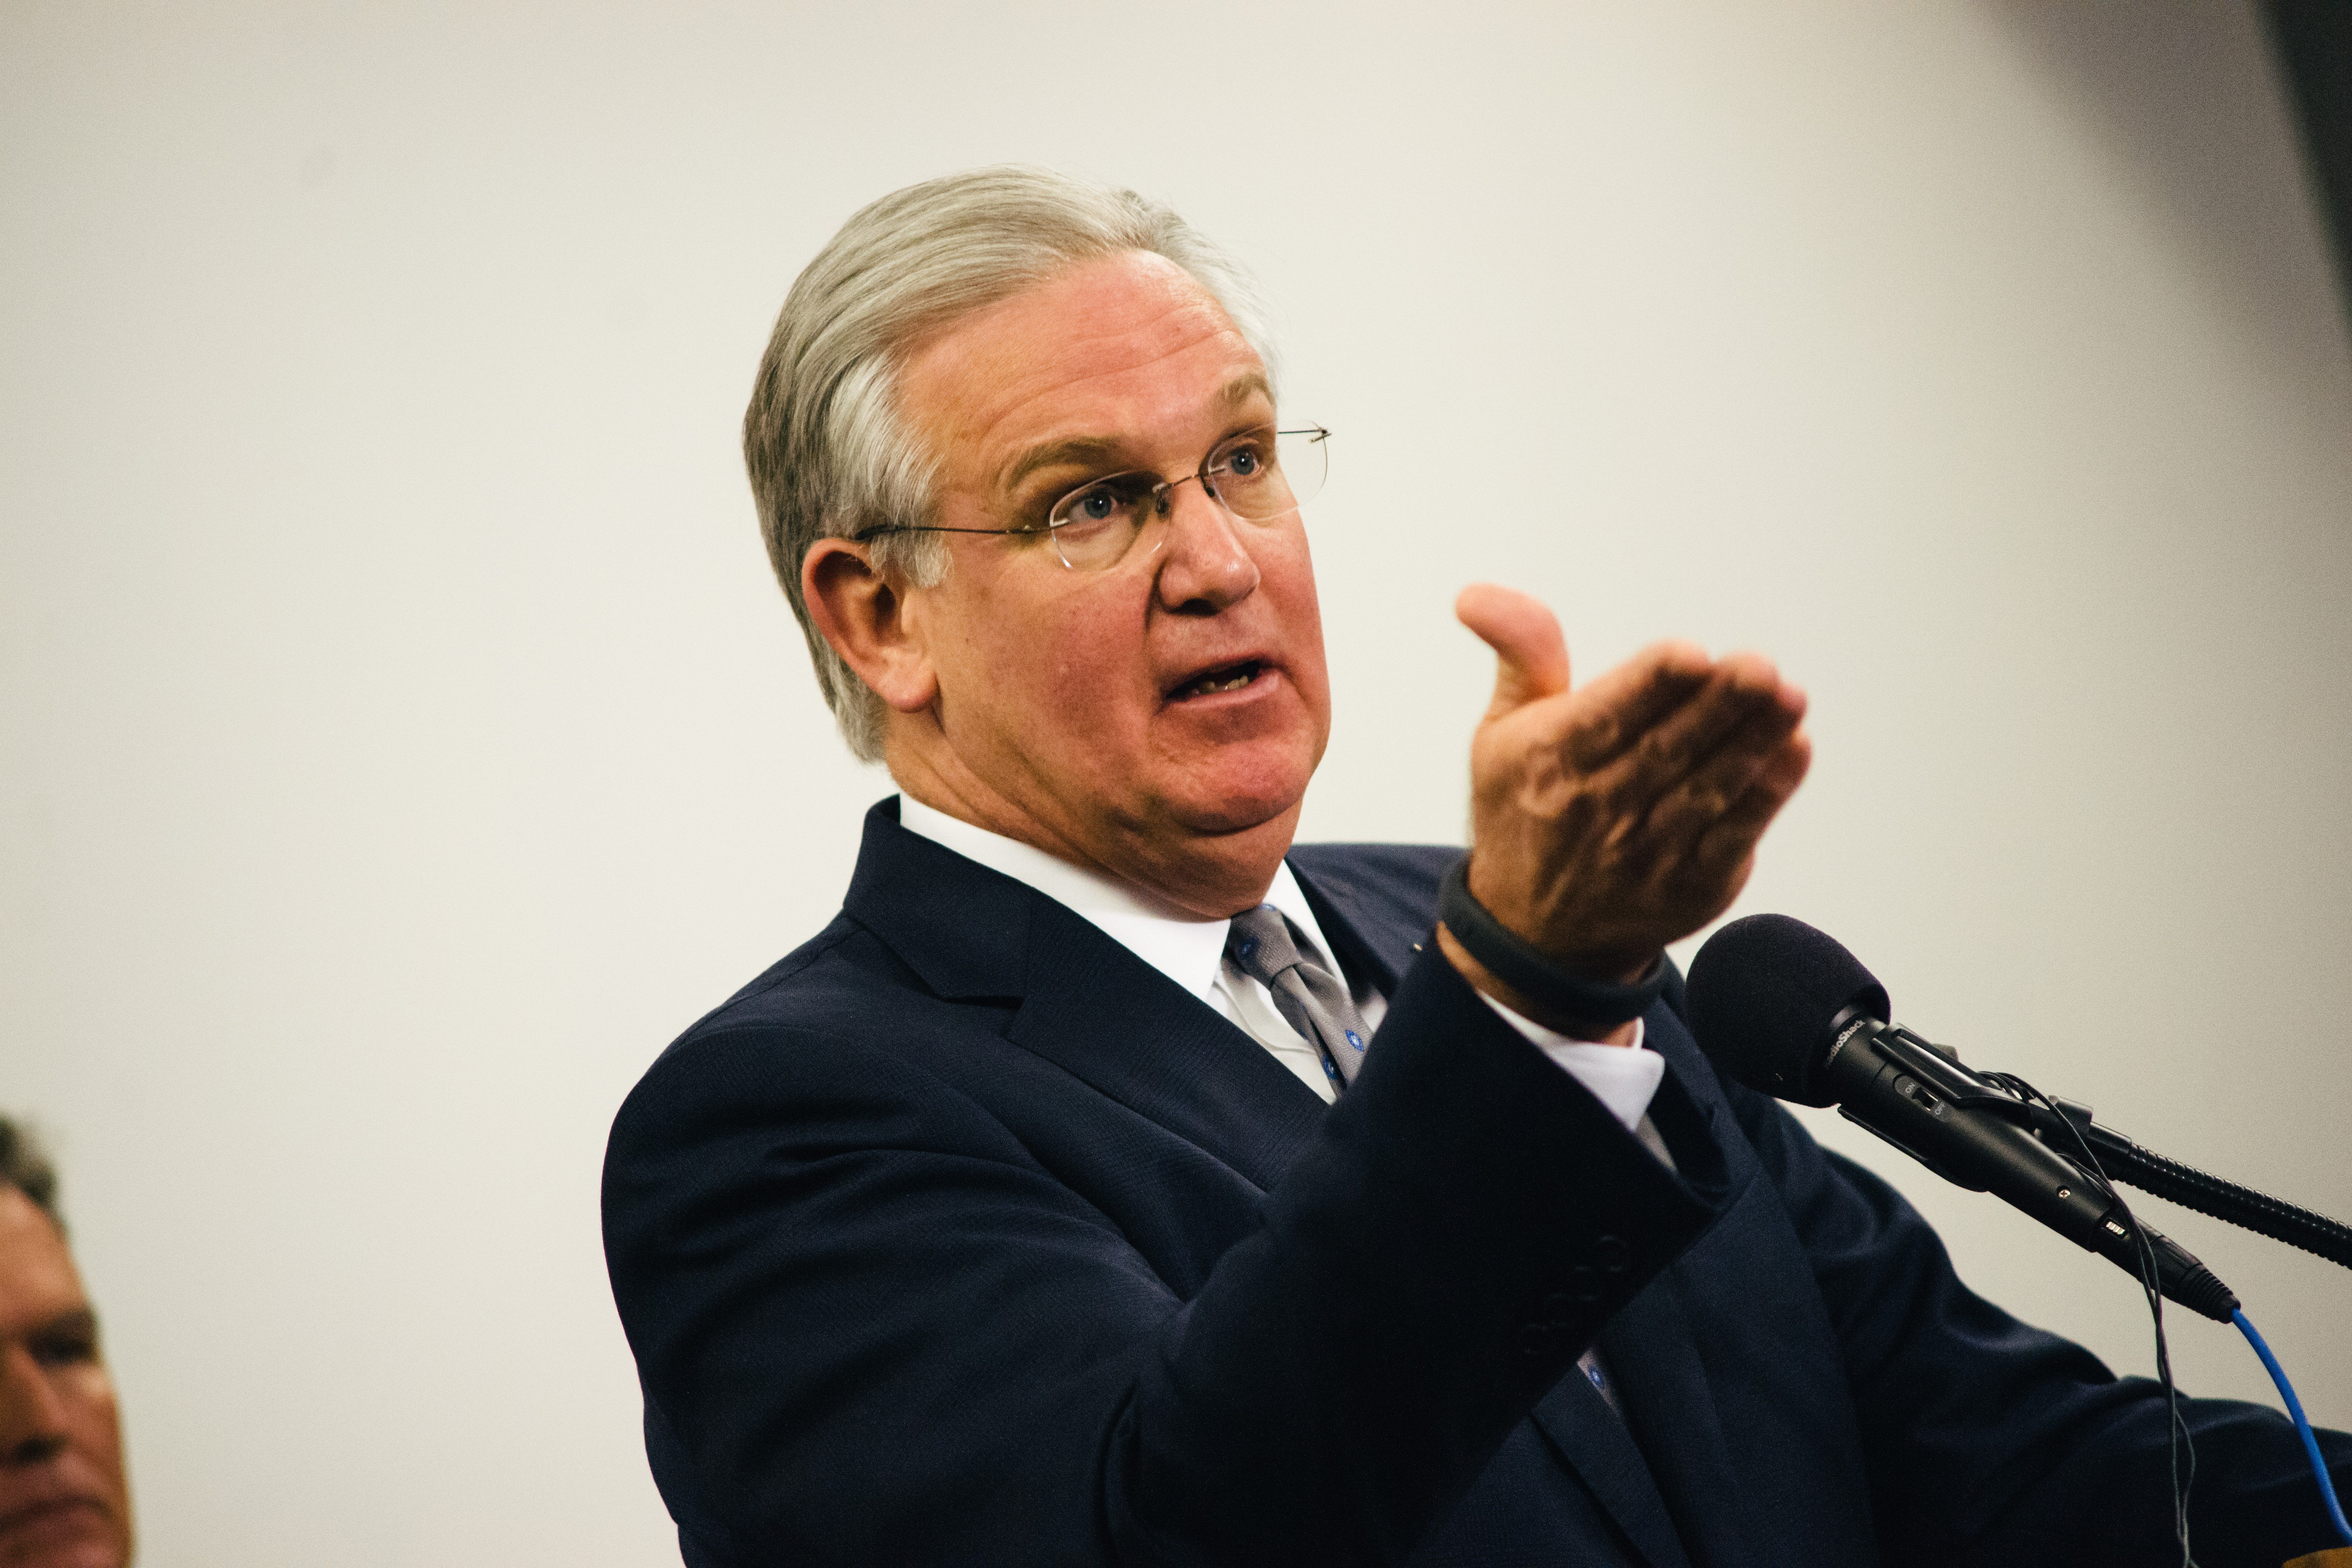 At a Nov. 11 press conference, Missouri Governor Jay Nixon said the National Guard could again be deployed to deal with violence in Ferguson.